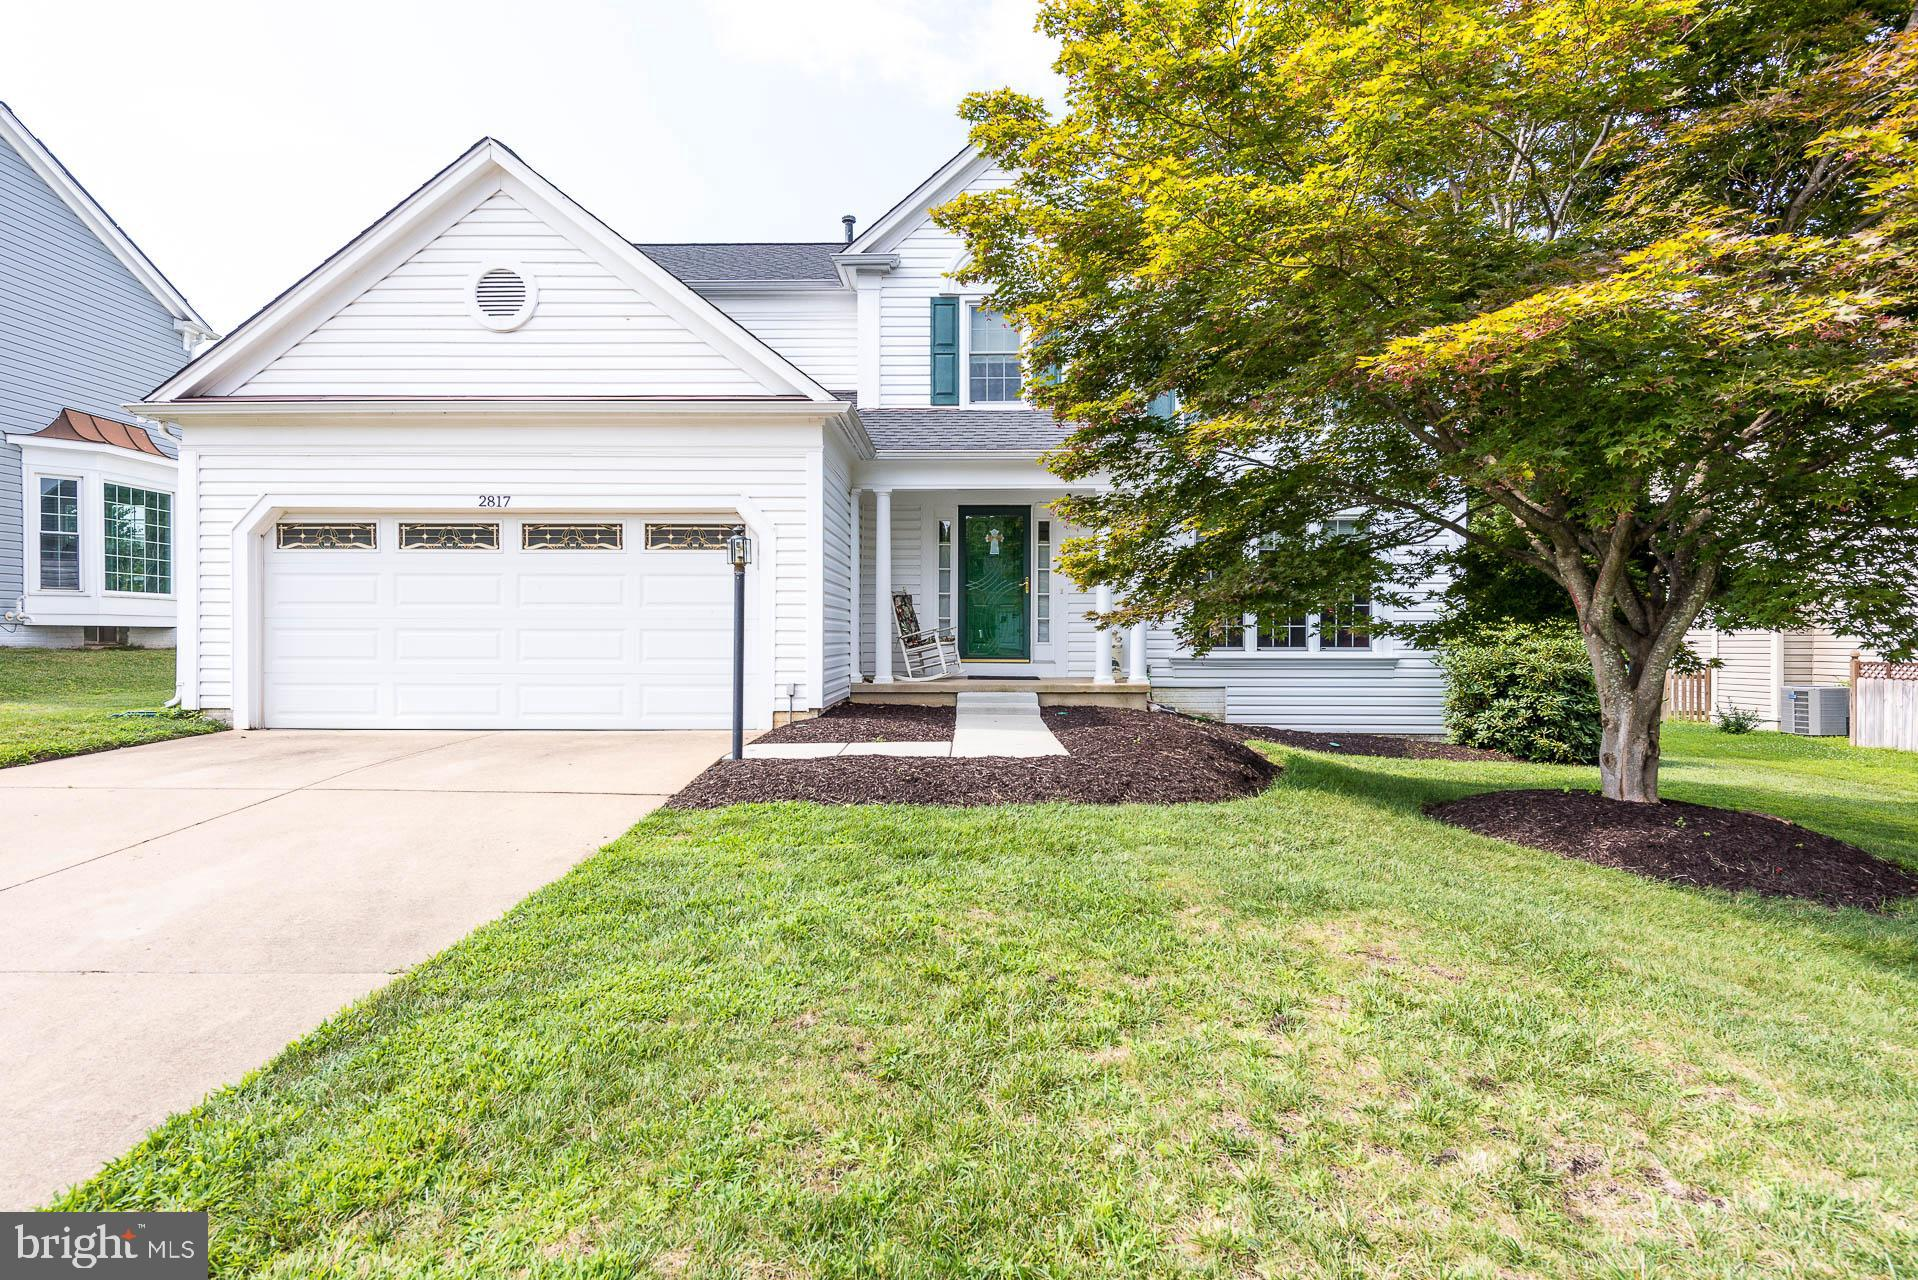 This beautifully well-kept home in the desirable and quiet River Oaks subdivision offers convenience